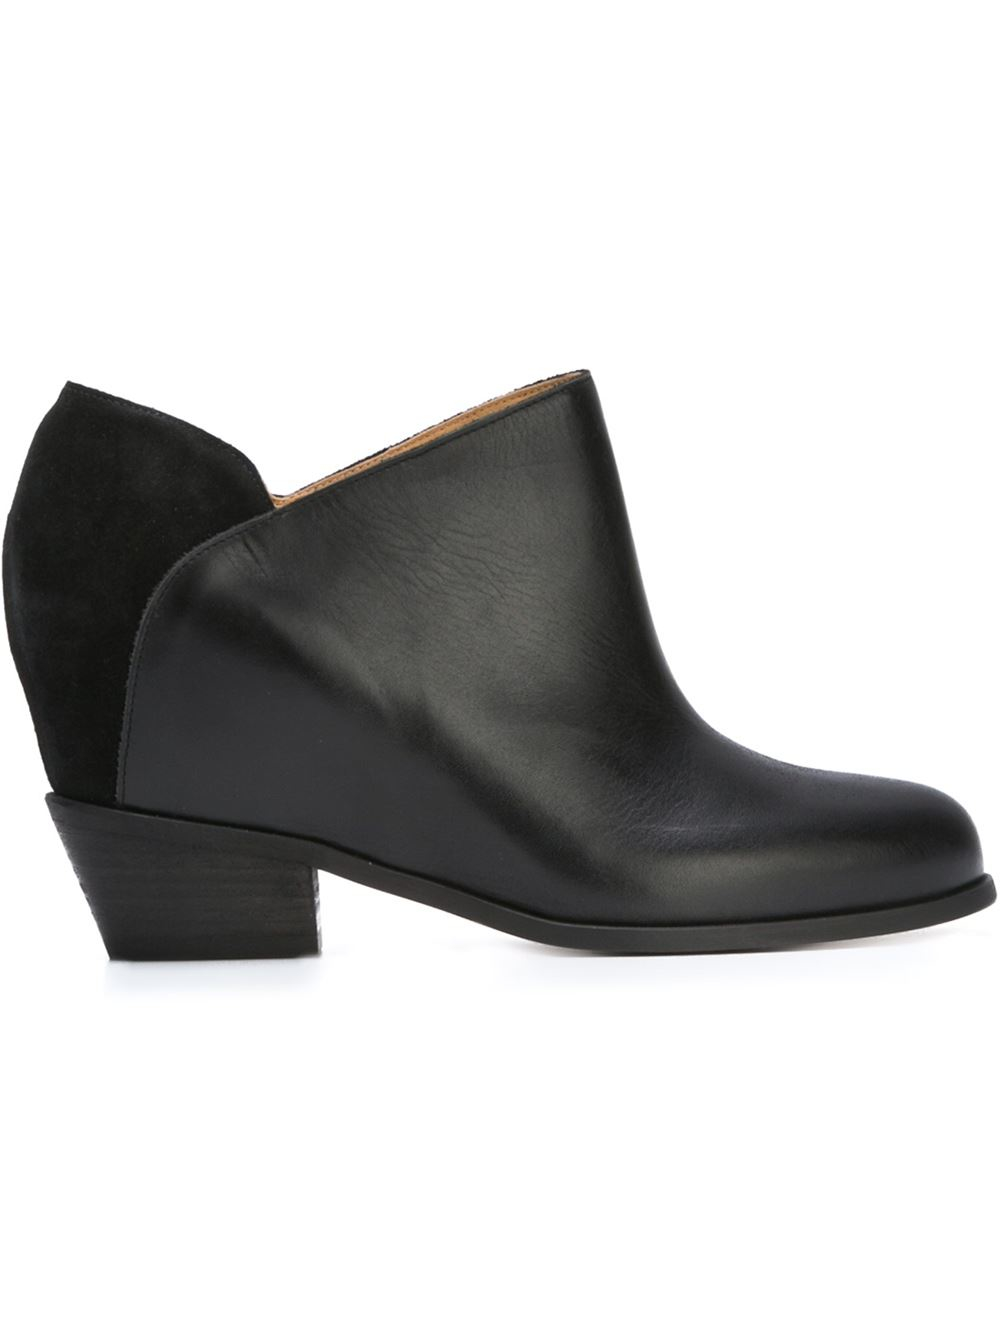 Mm6 by maison martin margiela sculpted booties in black lyst for Mm6 maison margiela